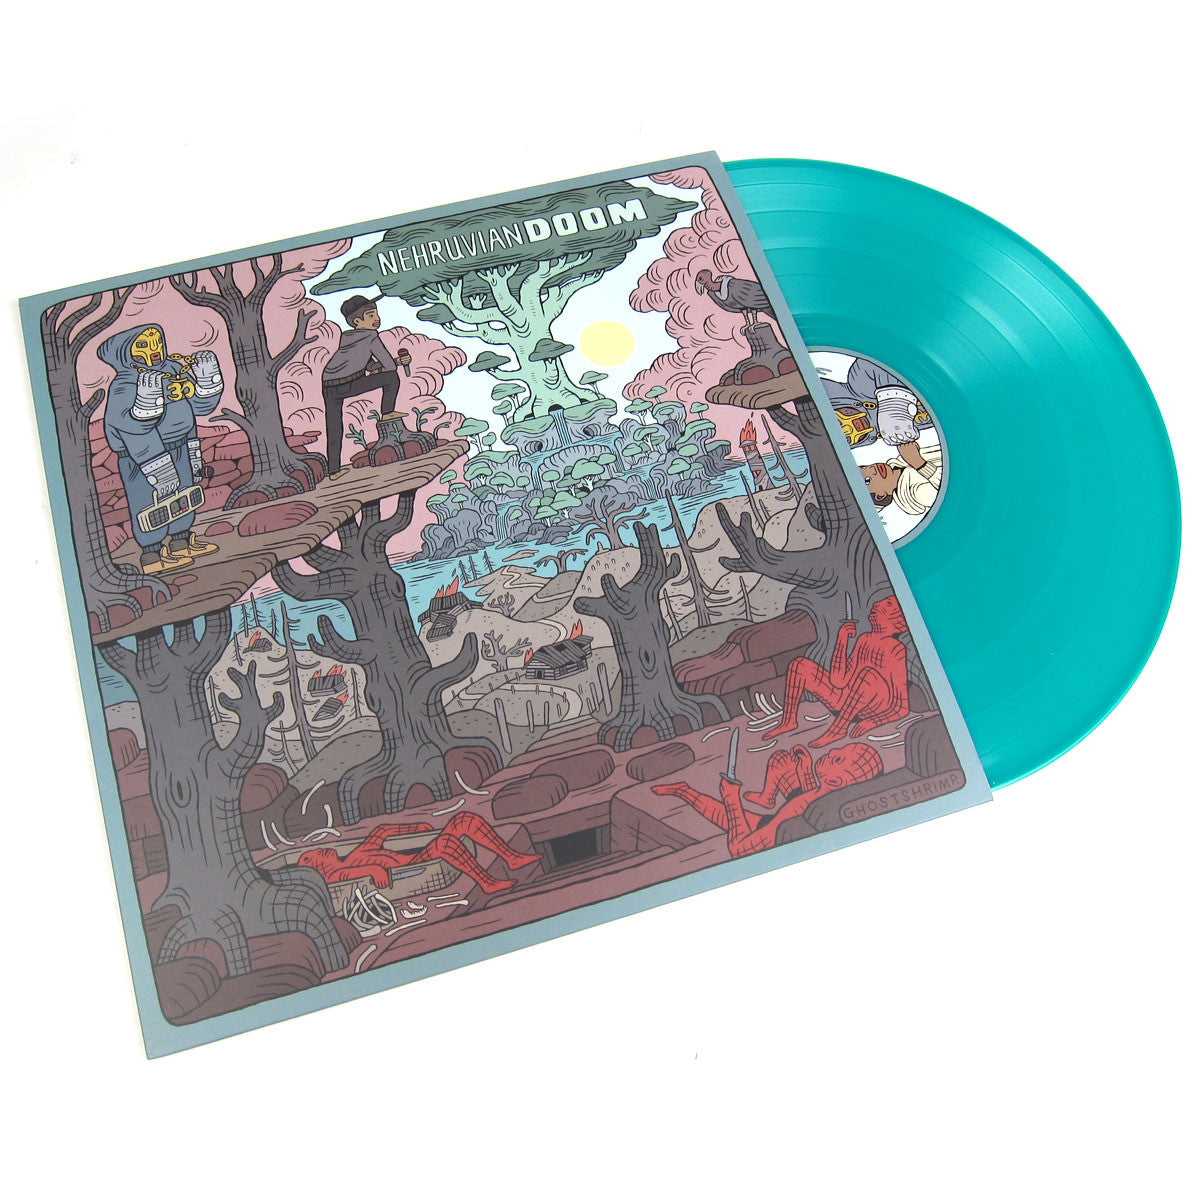 NehruvianDOOM: NehruvianDOOM (Indie Exclusive Colored Vinyl, Free MP3, MF Doom) Vinyl LP